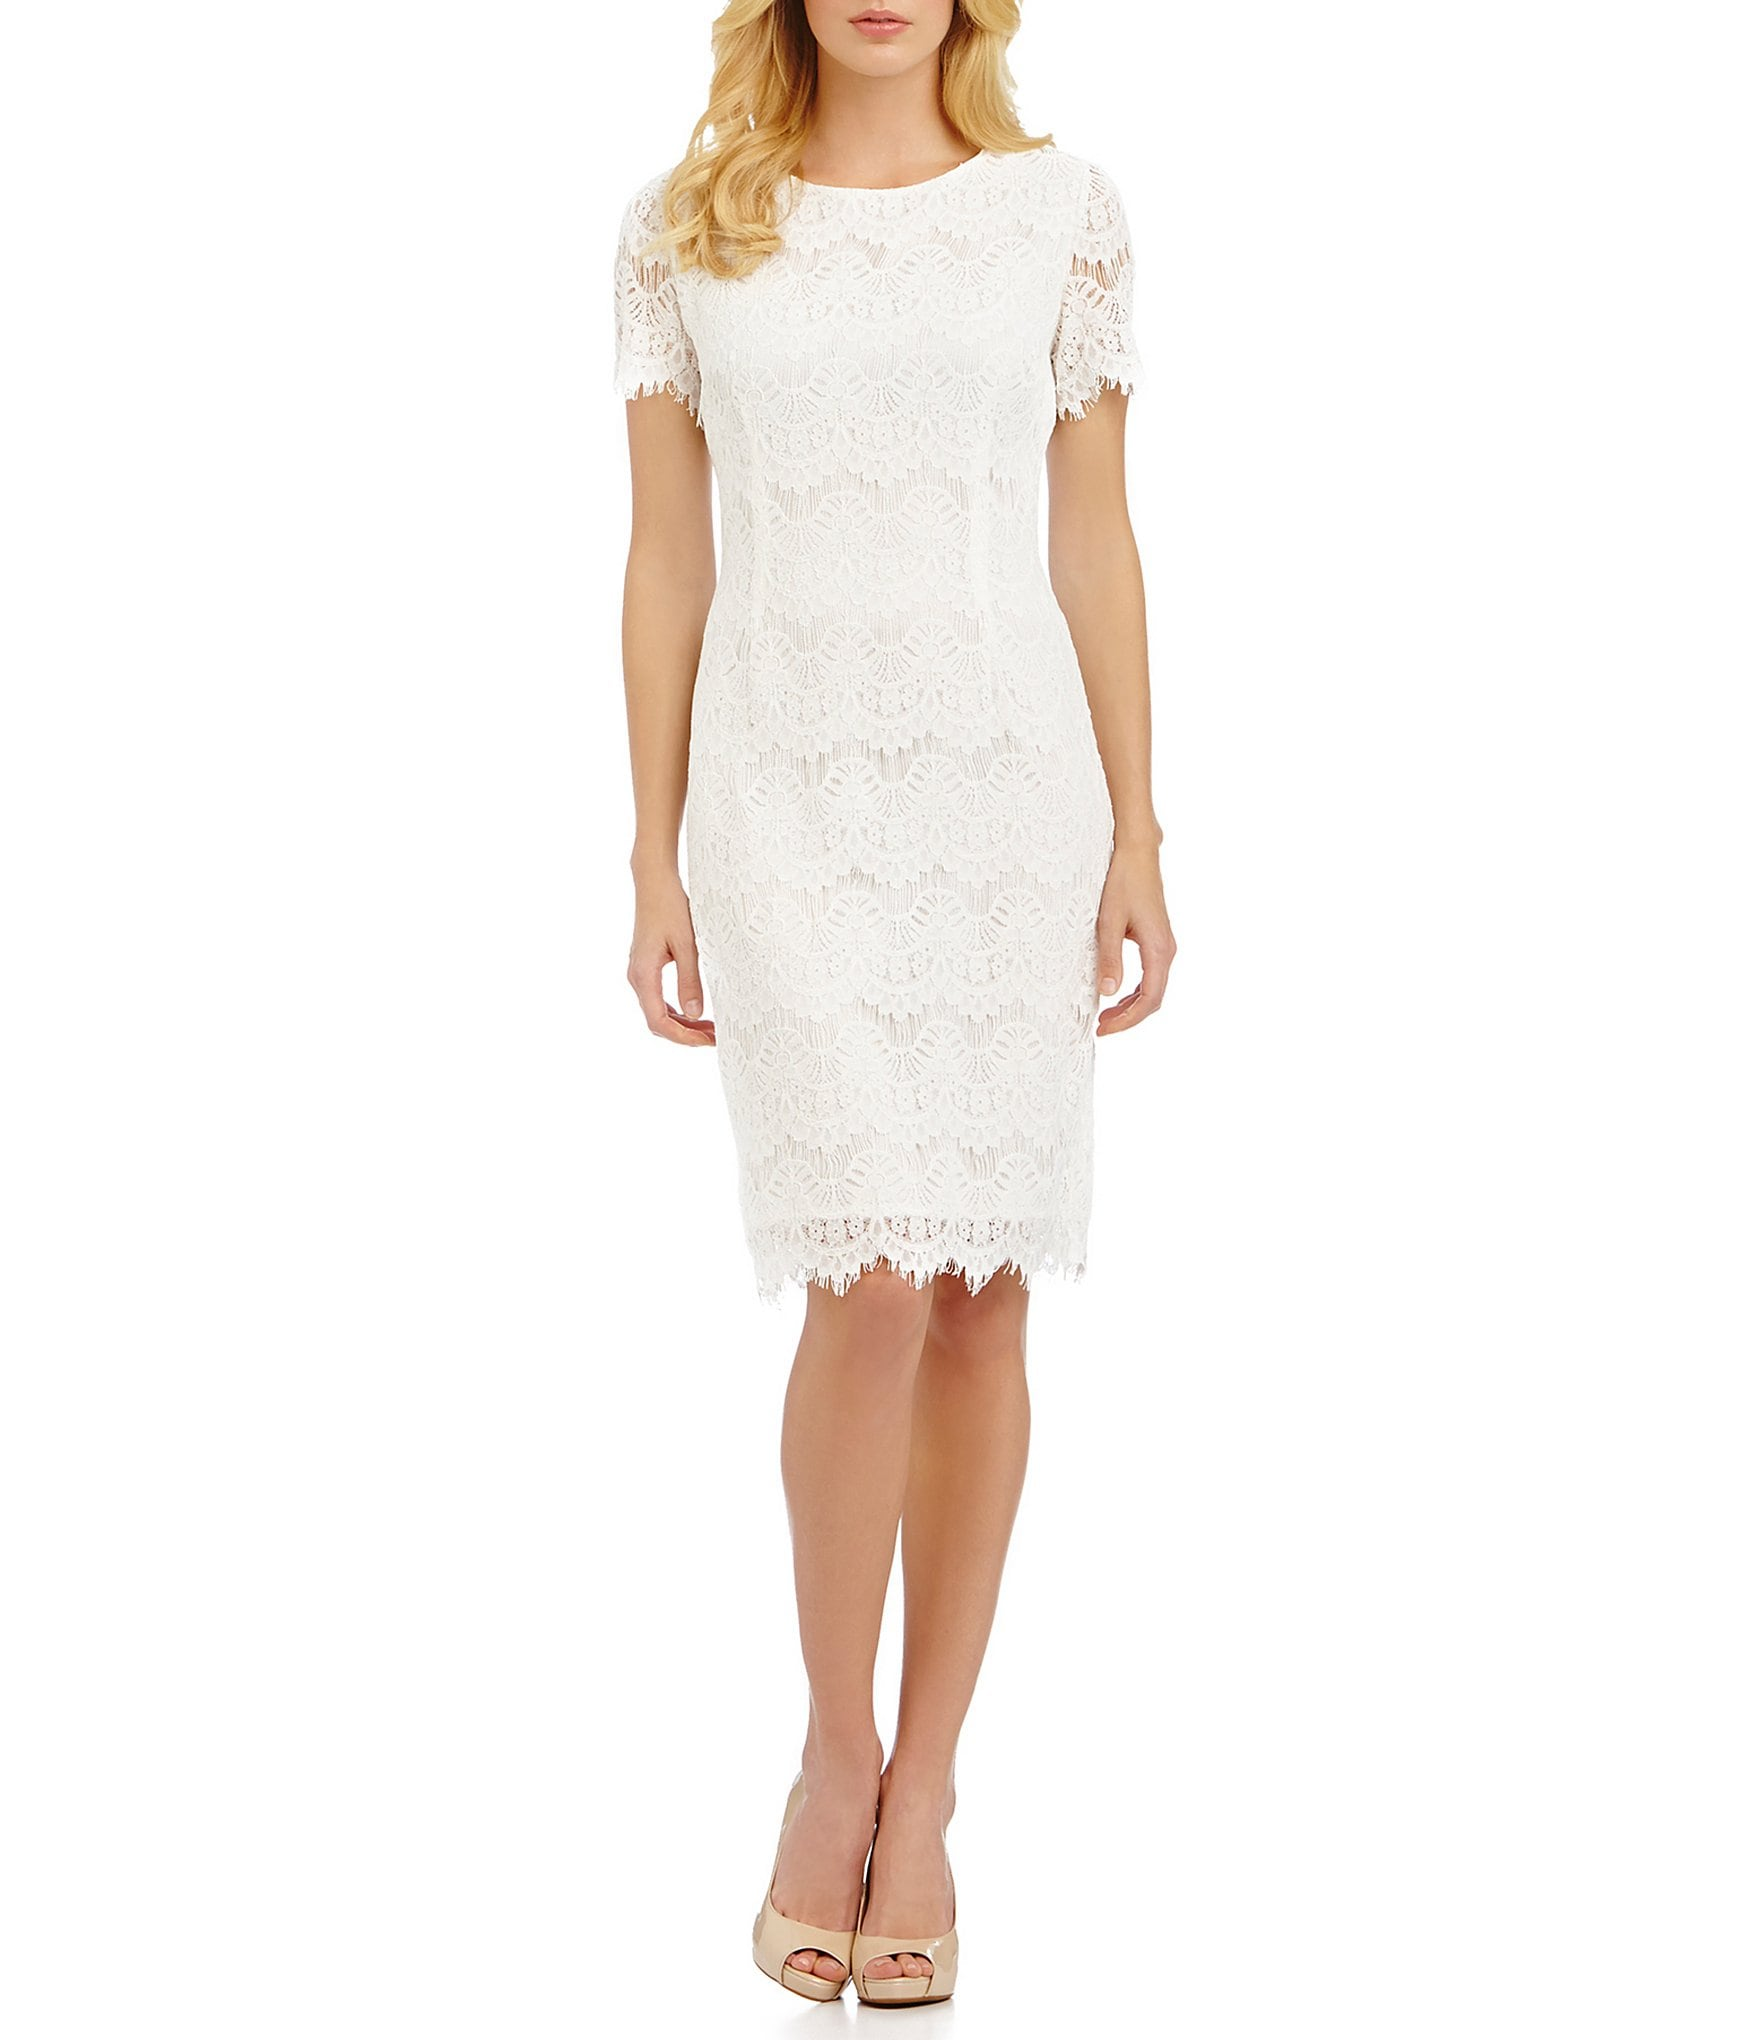 b4a282efecf3 Women's Cocktail & Party Dresses | Dillard's